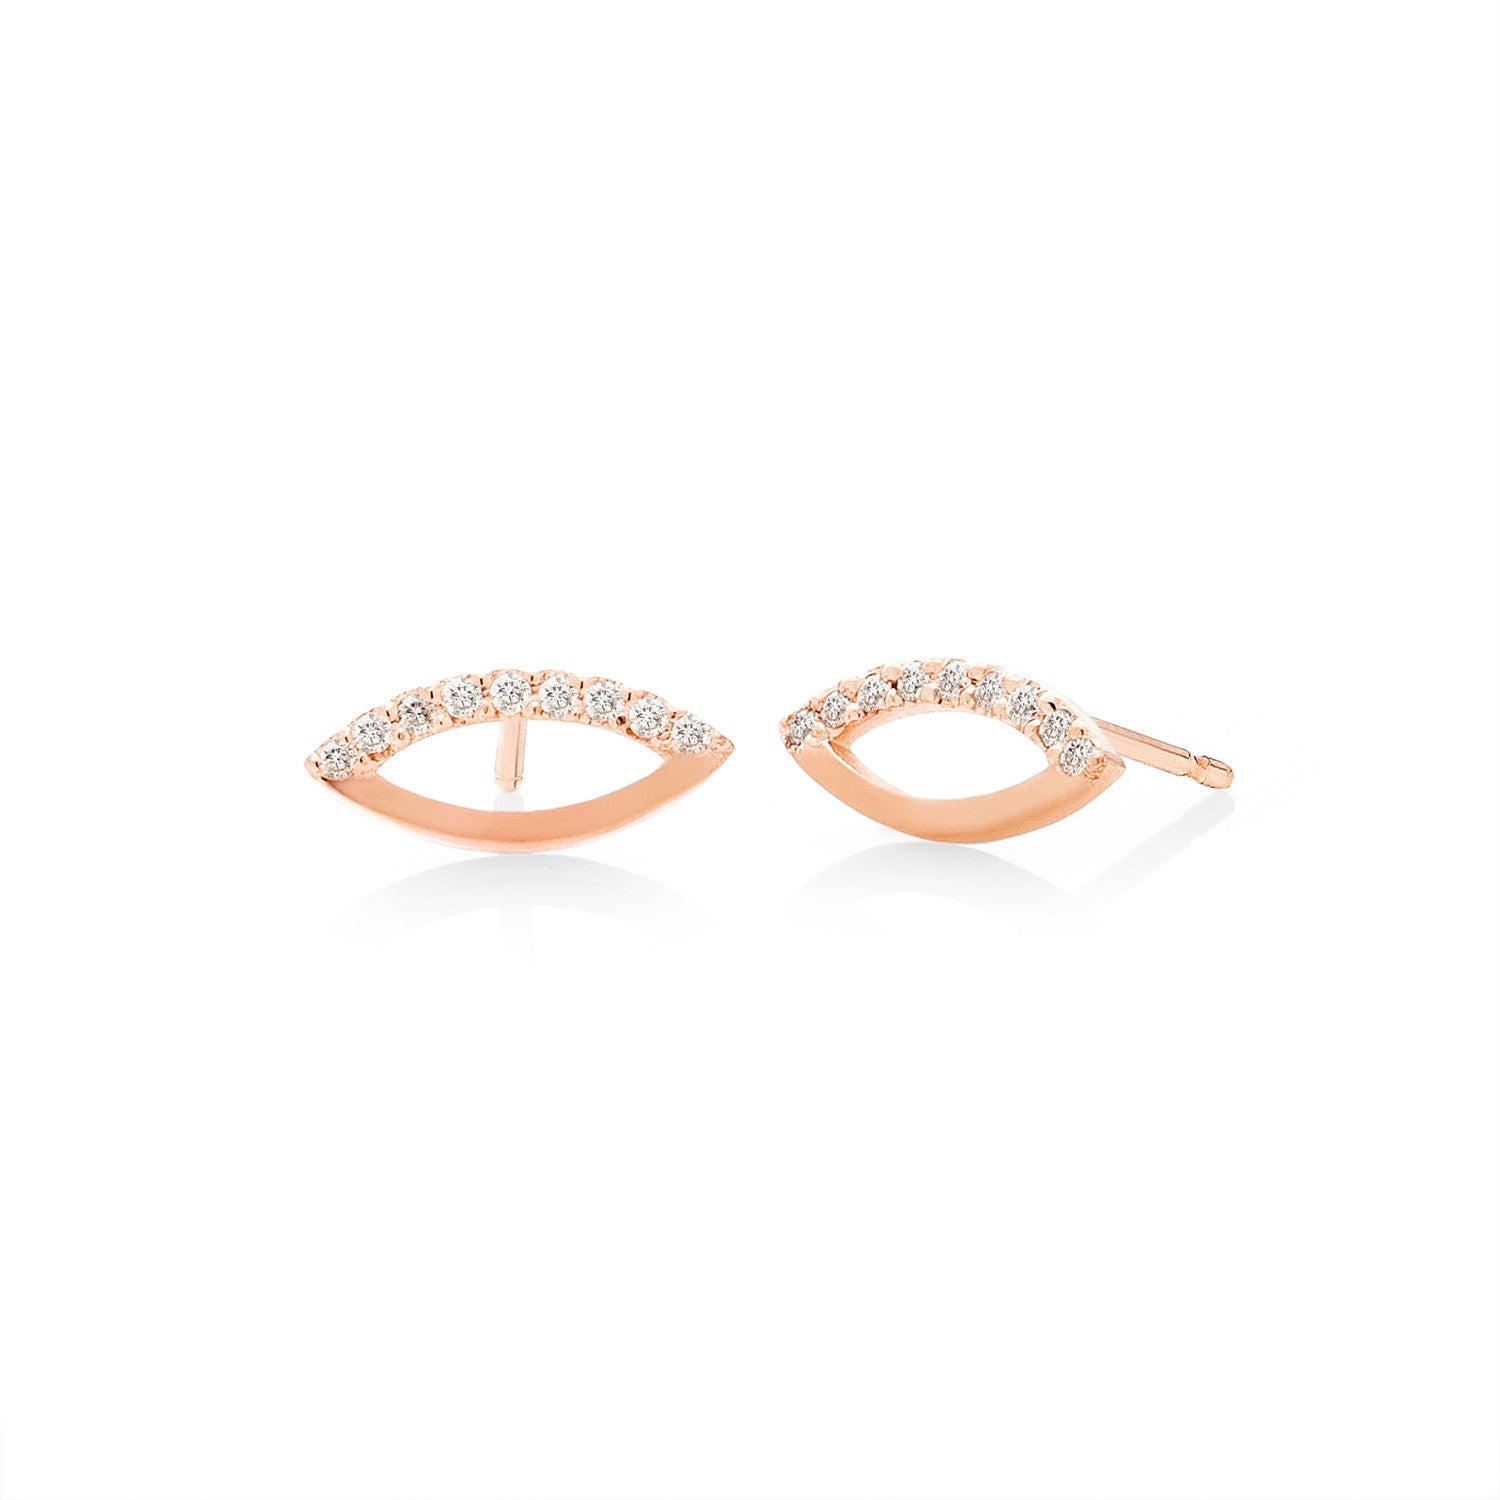 Half-Pave Oculus Marquise Stud Earrings